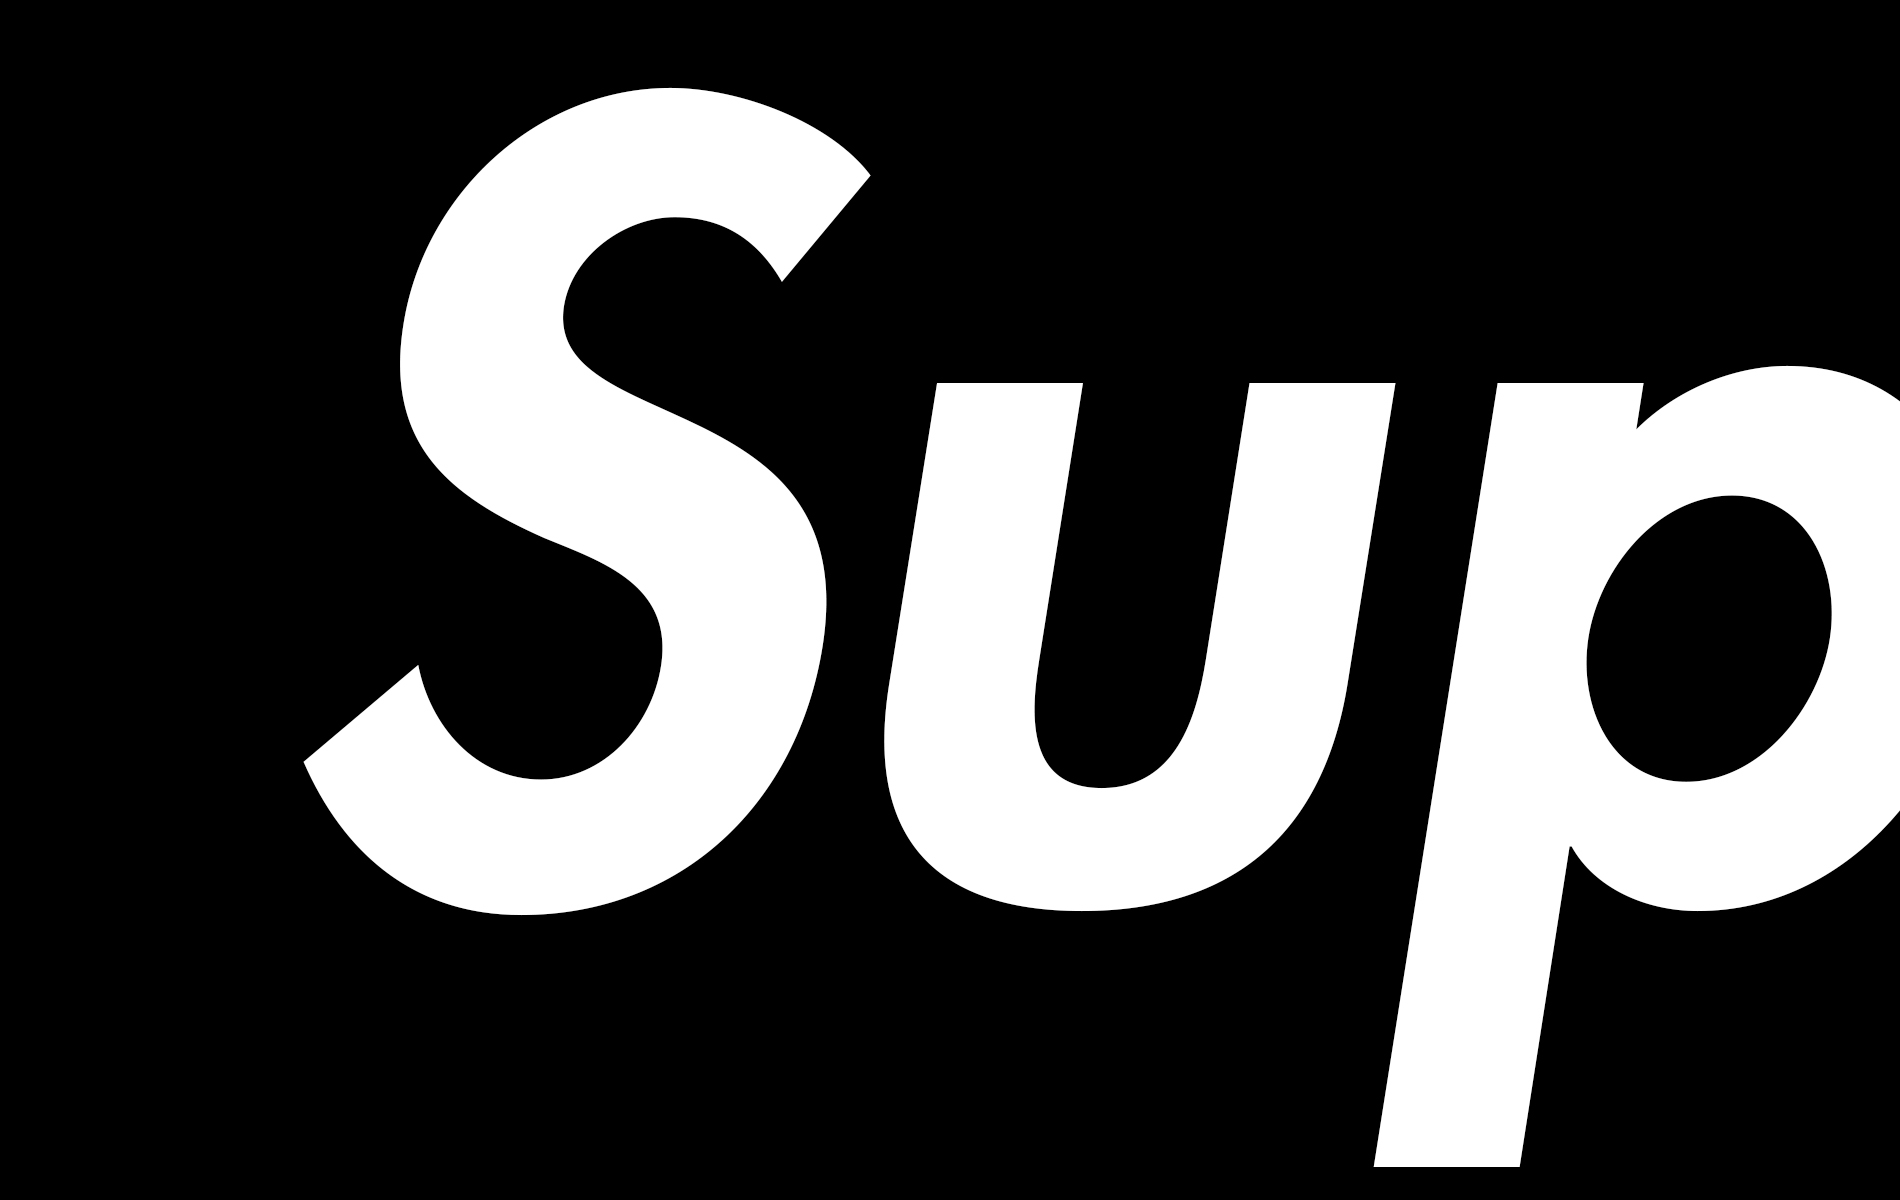 Supreme Wallpapers desktop and mobile HD 18